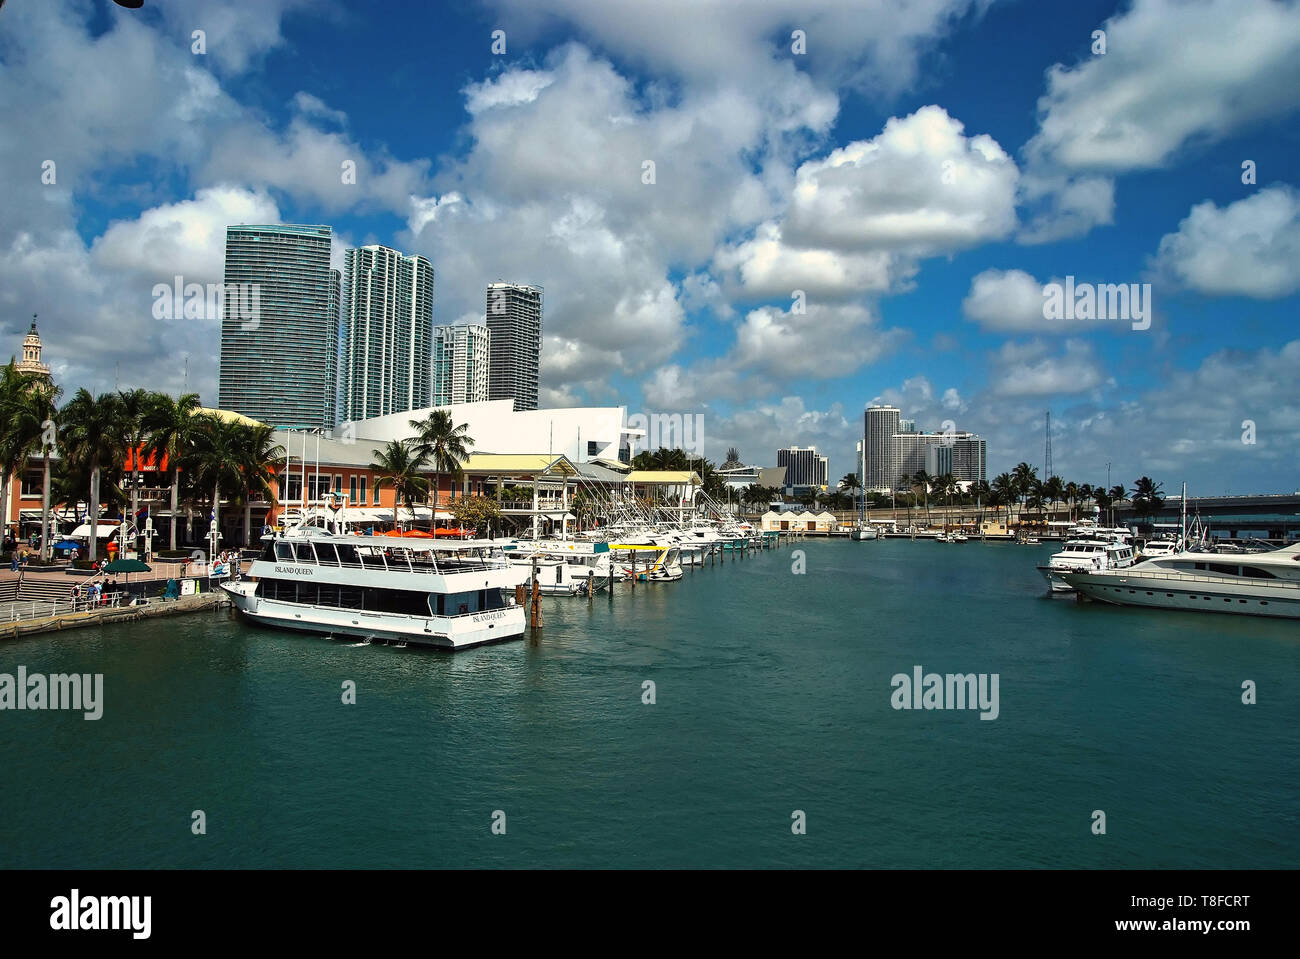 Miami, USA -september 28, 2008 : city harbor waterfront with boats on blue water on cloudy sky background Miami, USA. Summer vacation and travelling concept - Stock Image